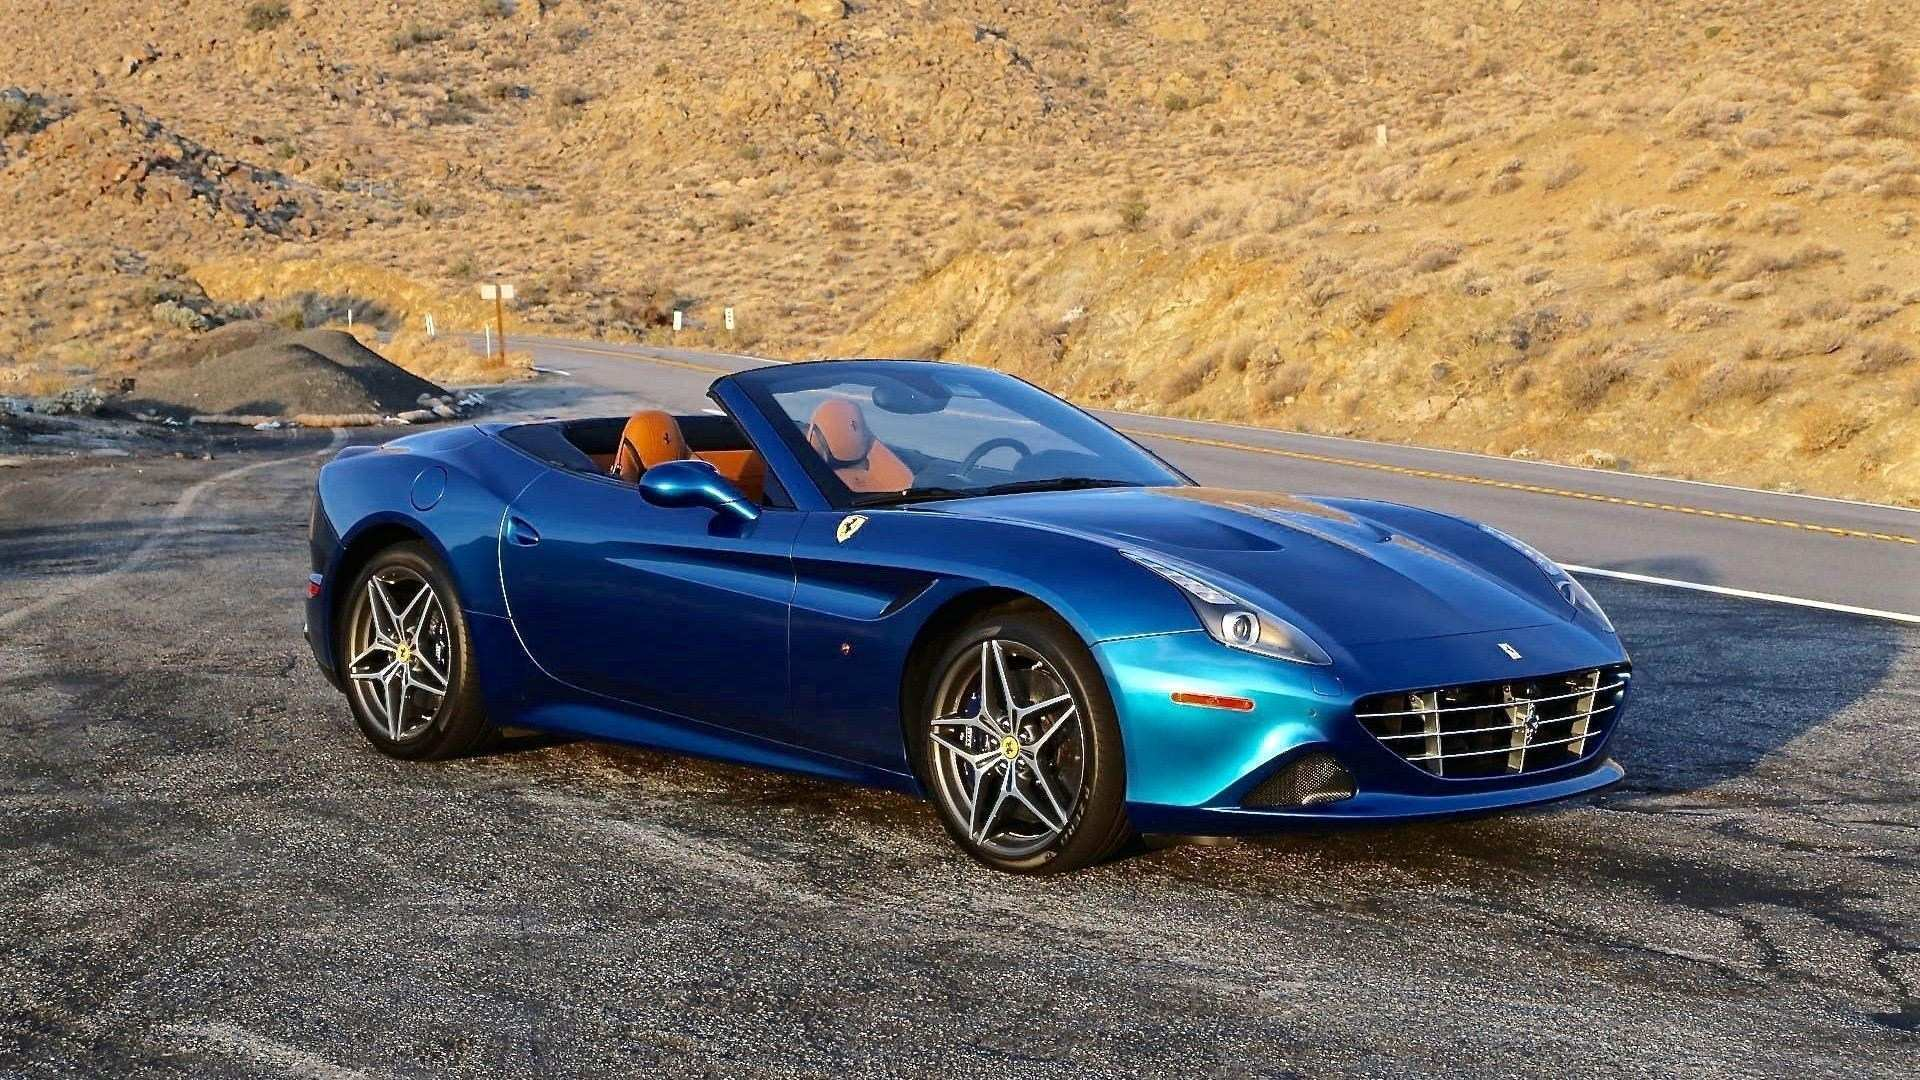 56 Great 2019 Ferrari California Price Pricing by 2019 Ferrari California Price